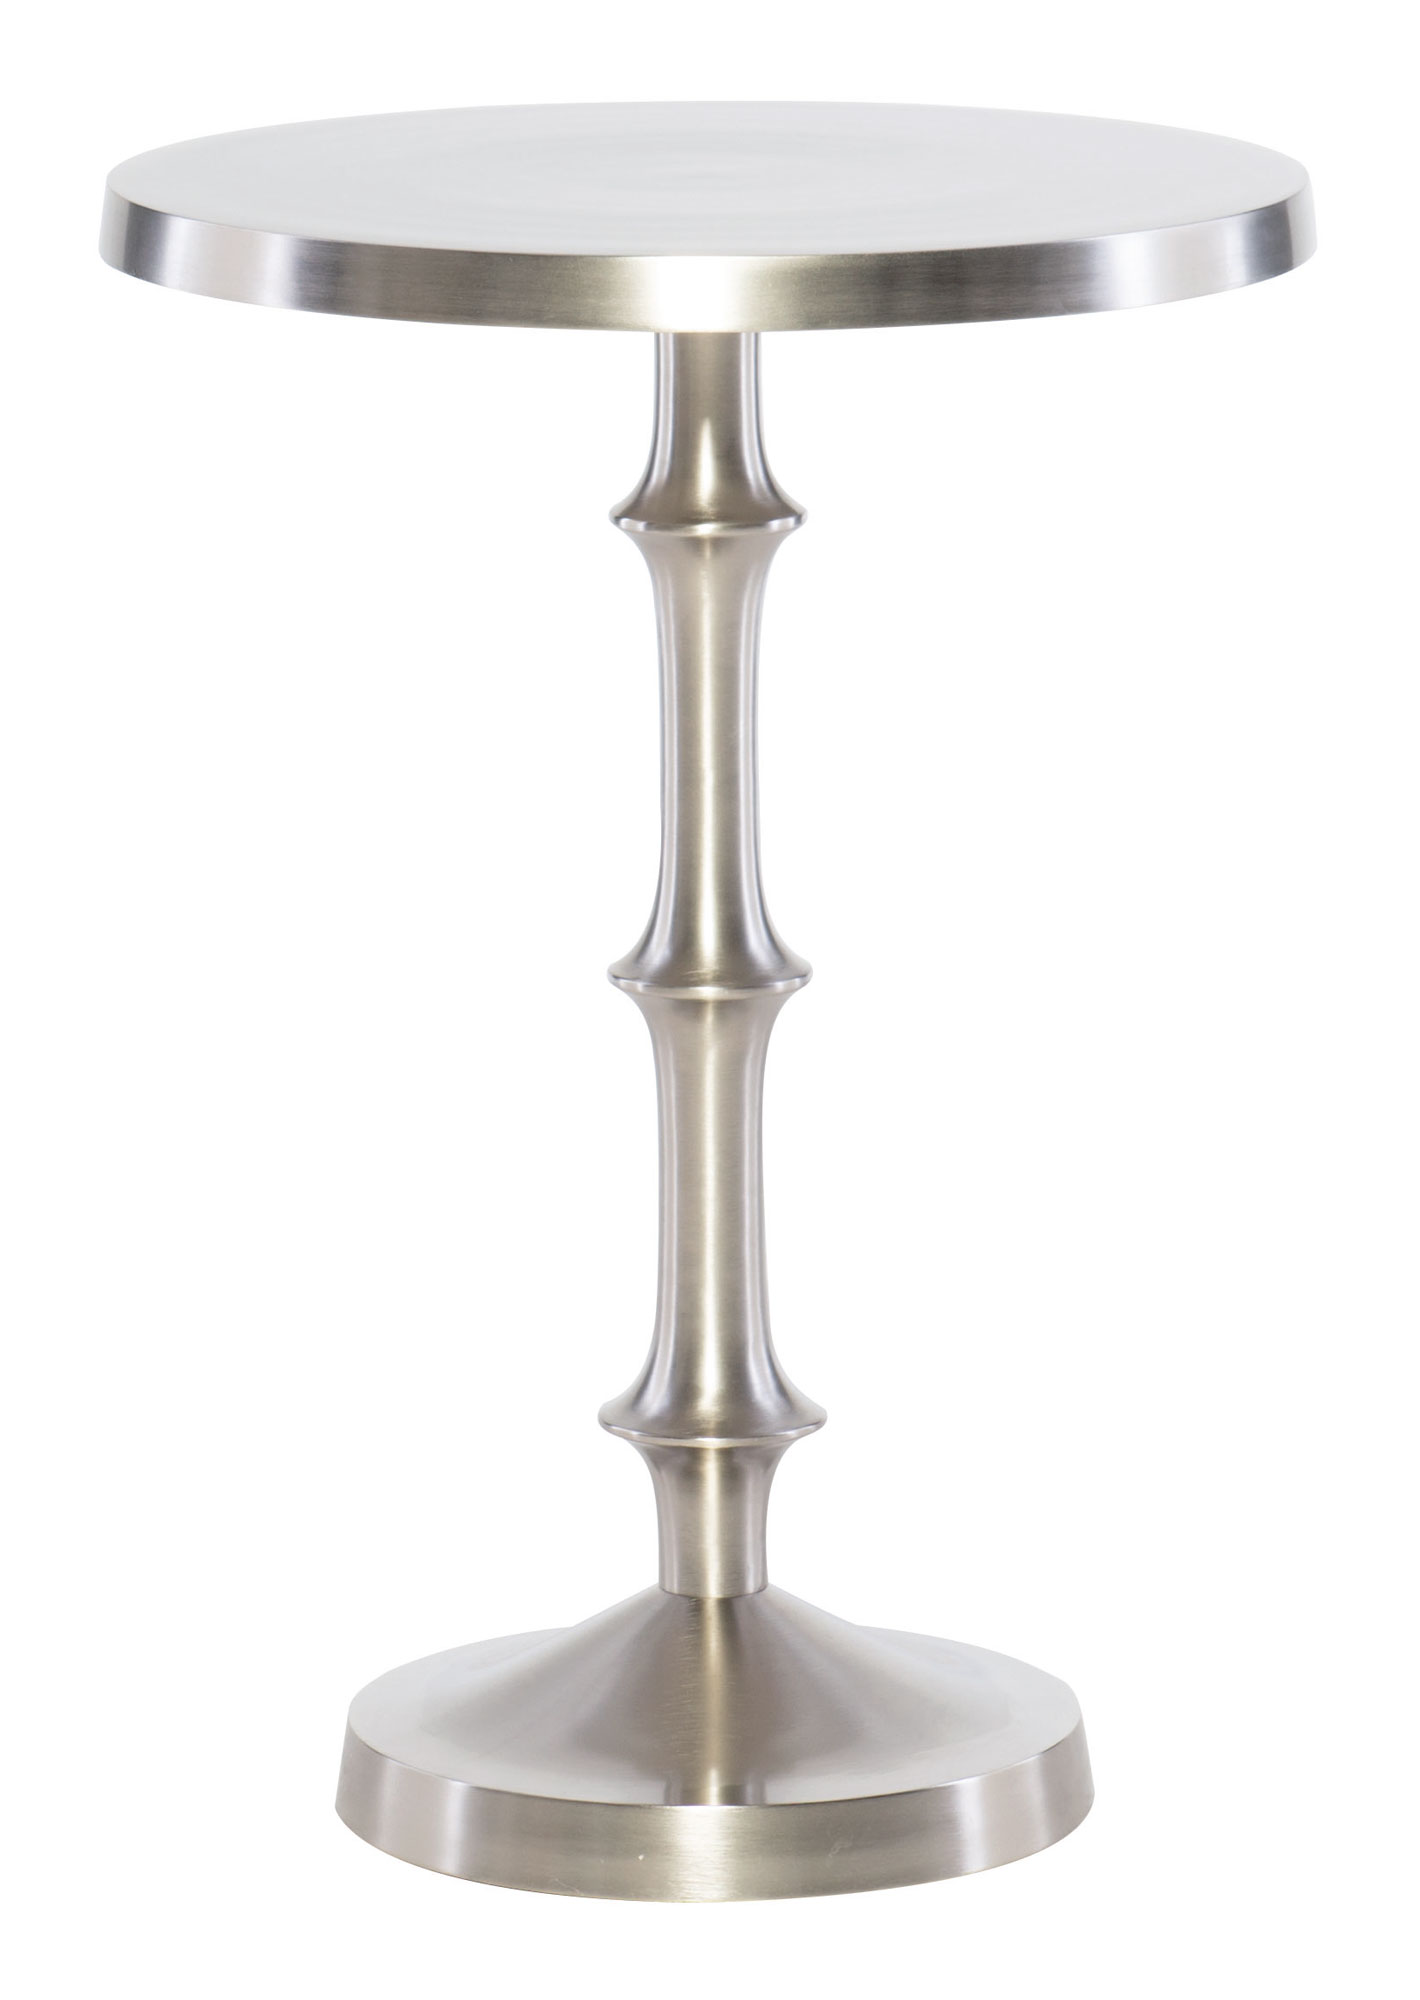 chair side tables canada dining covers ebay australia chairside table bernhardt